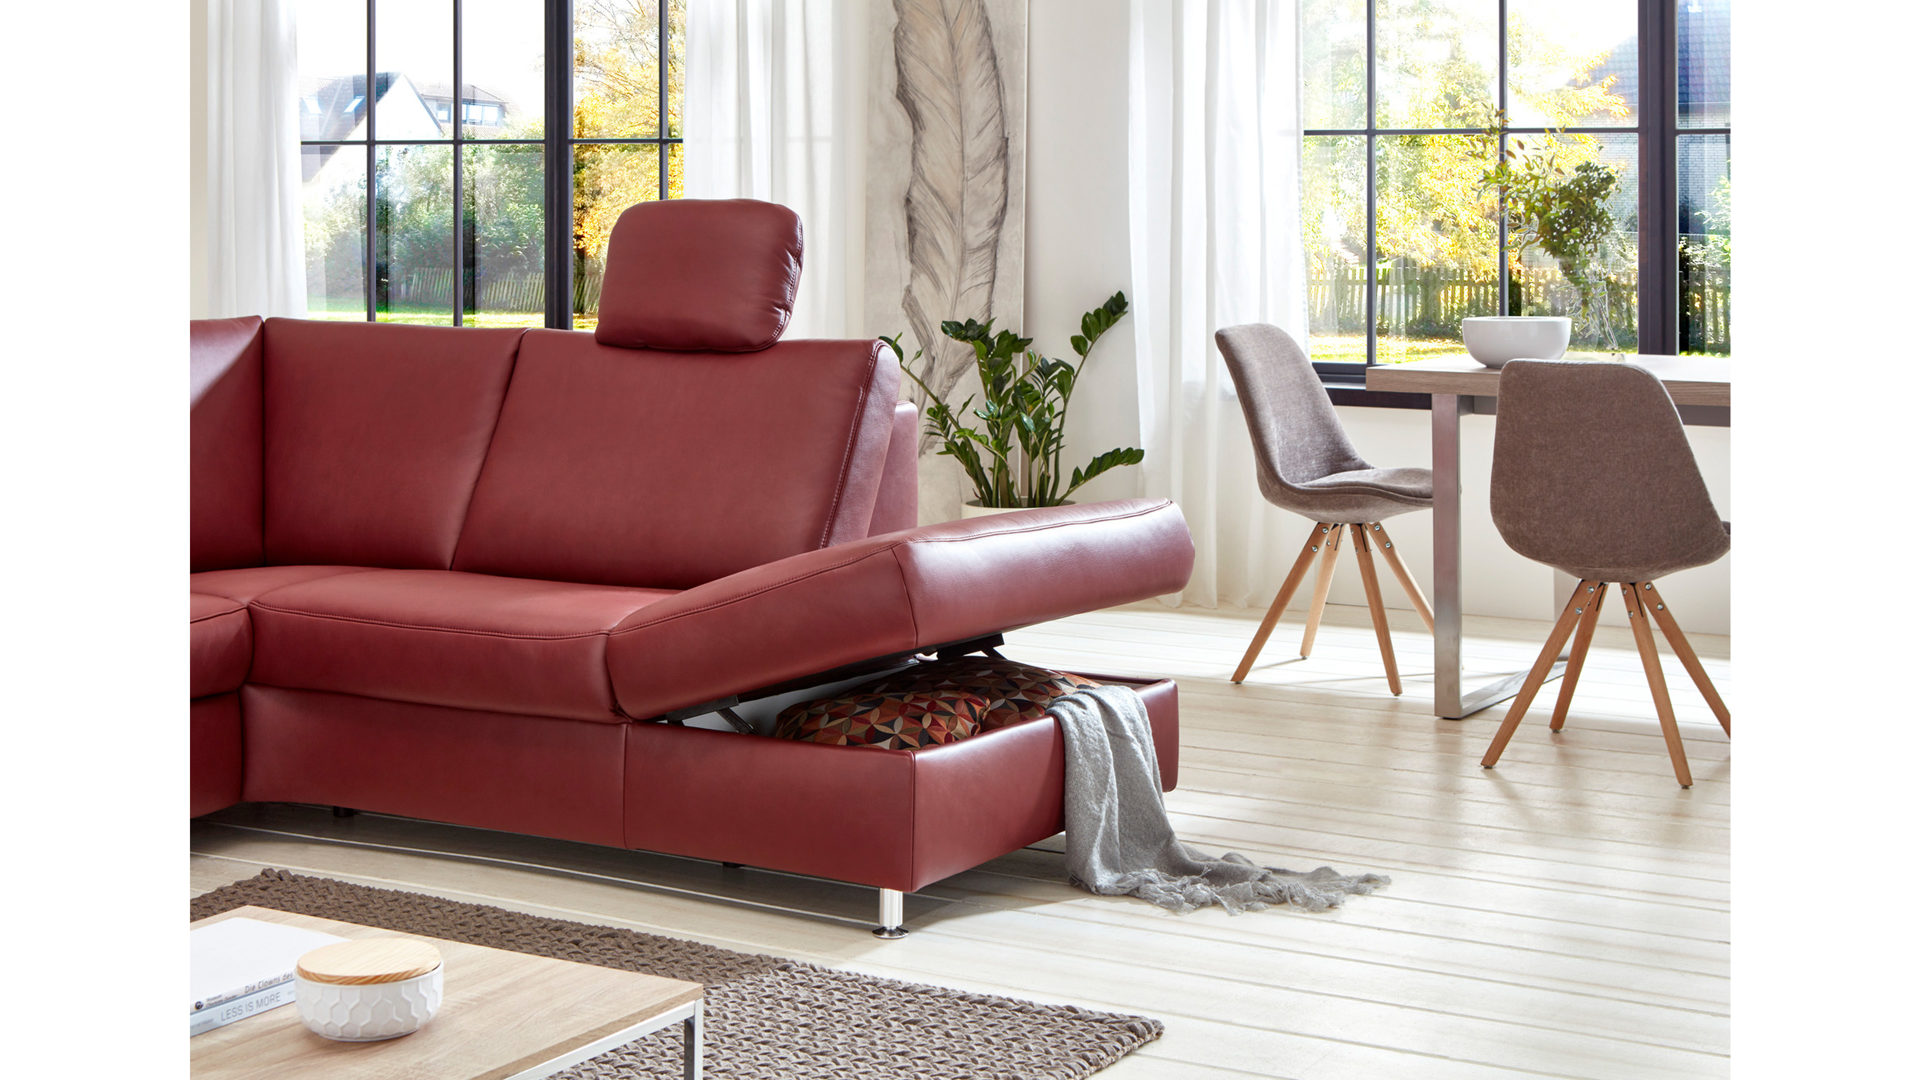 Ecksofa Rot Ecksofa Rot Awesome With Ecksofa Rot Great Domo Collection